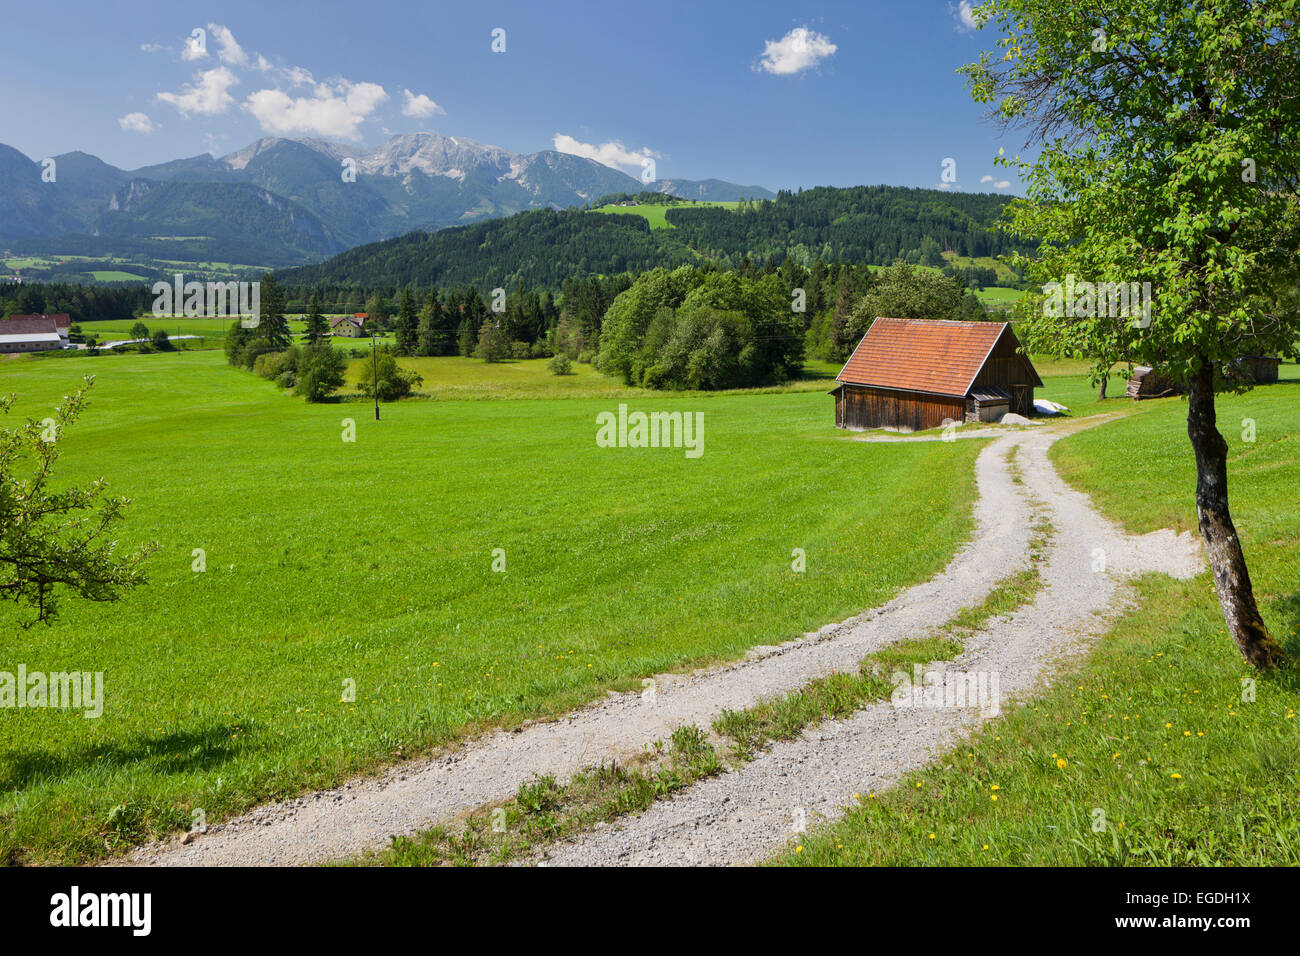 Rading near Windischgarsten, Totes Gebirge, Upper Austria, Austria Stock Photo